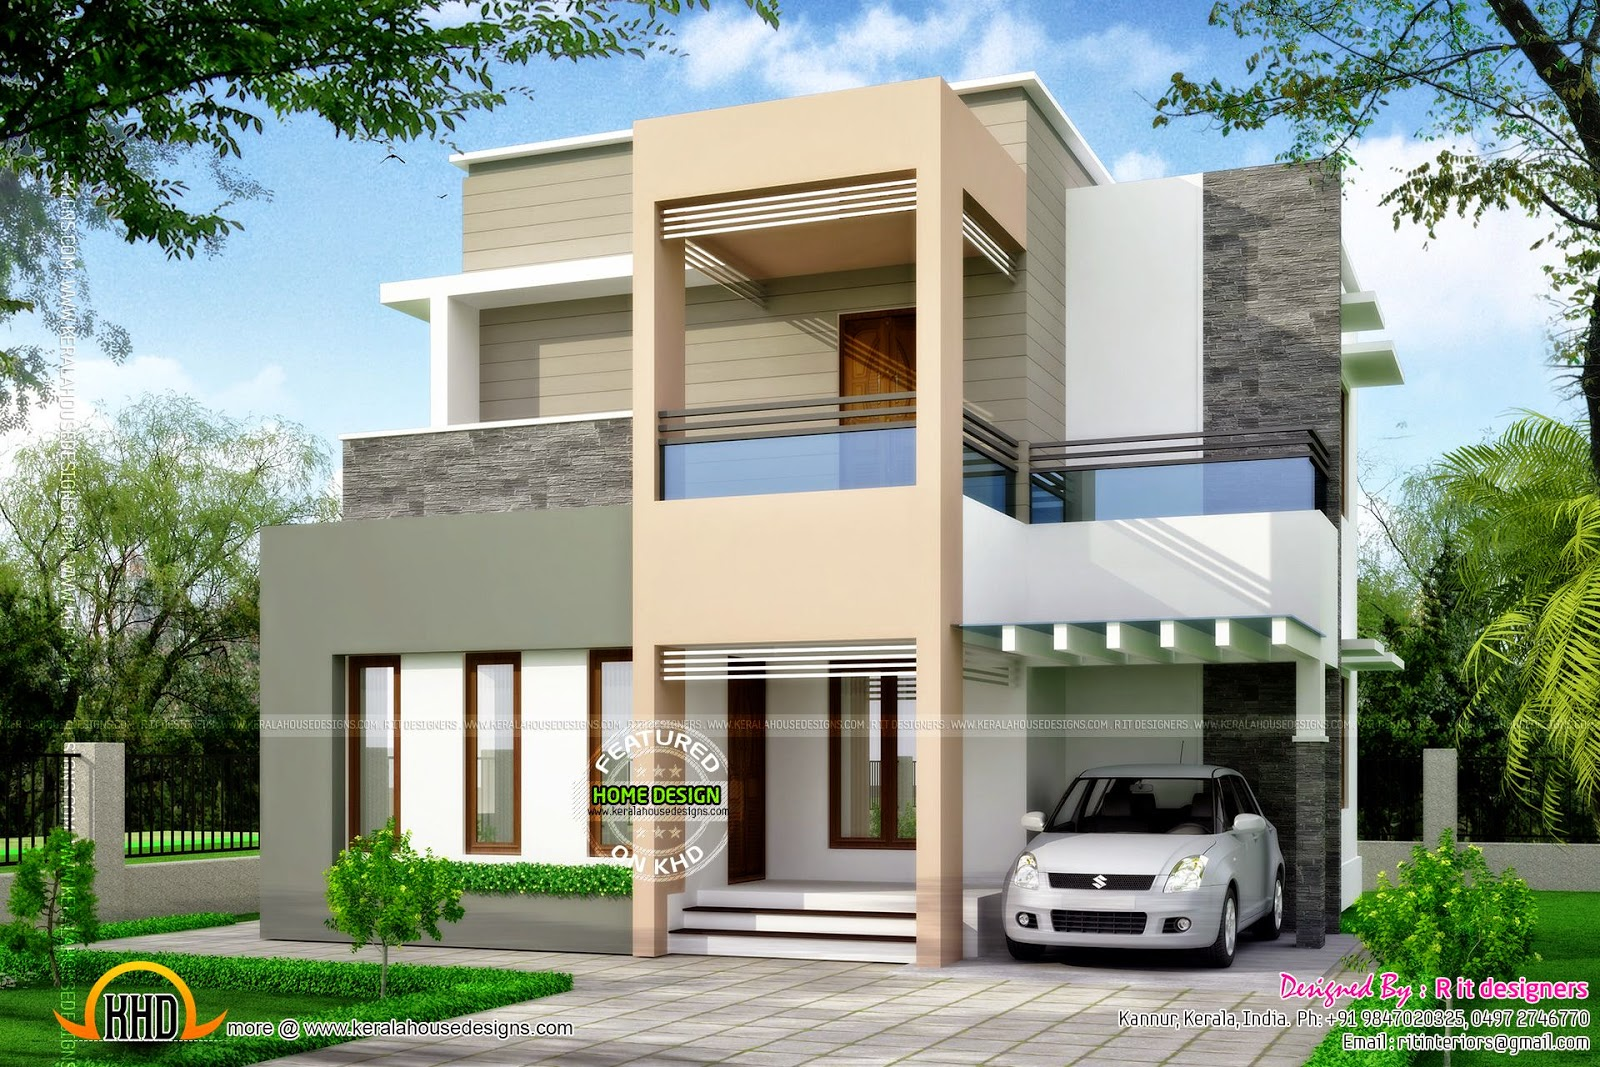 December 2014 kerala home design and floor plans Types of house plans